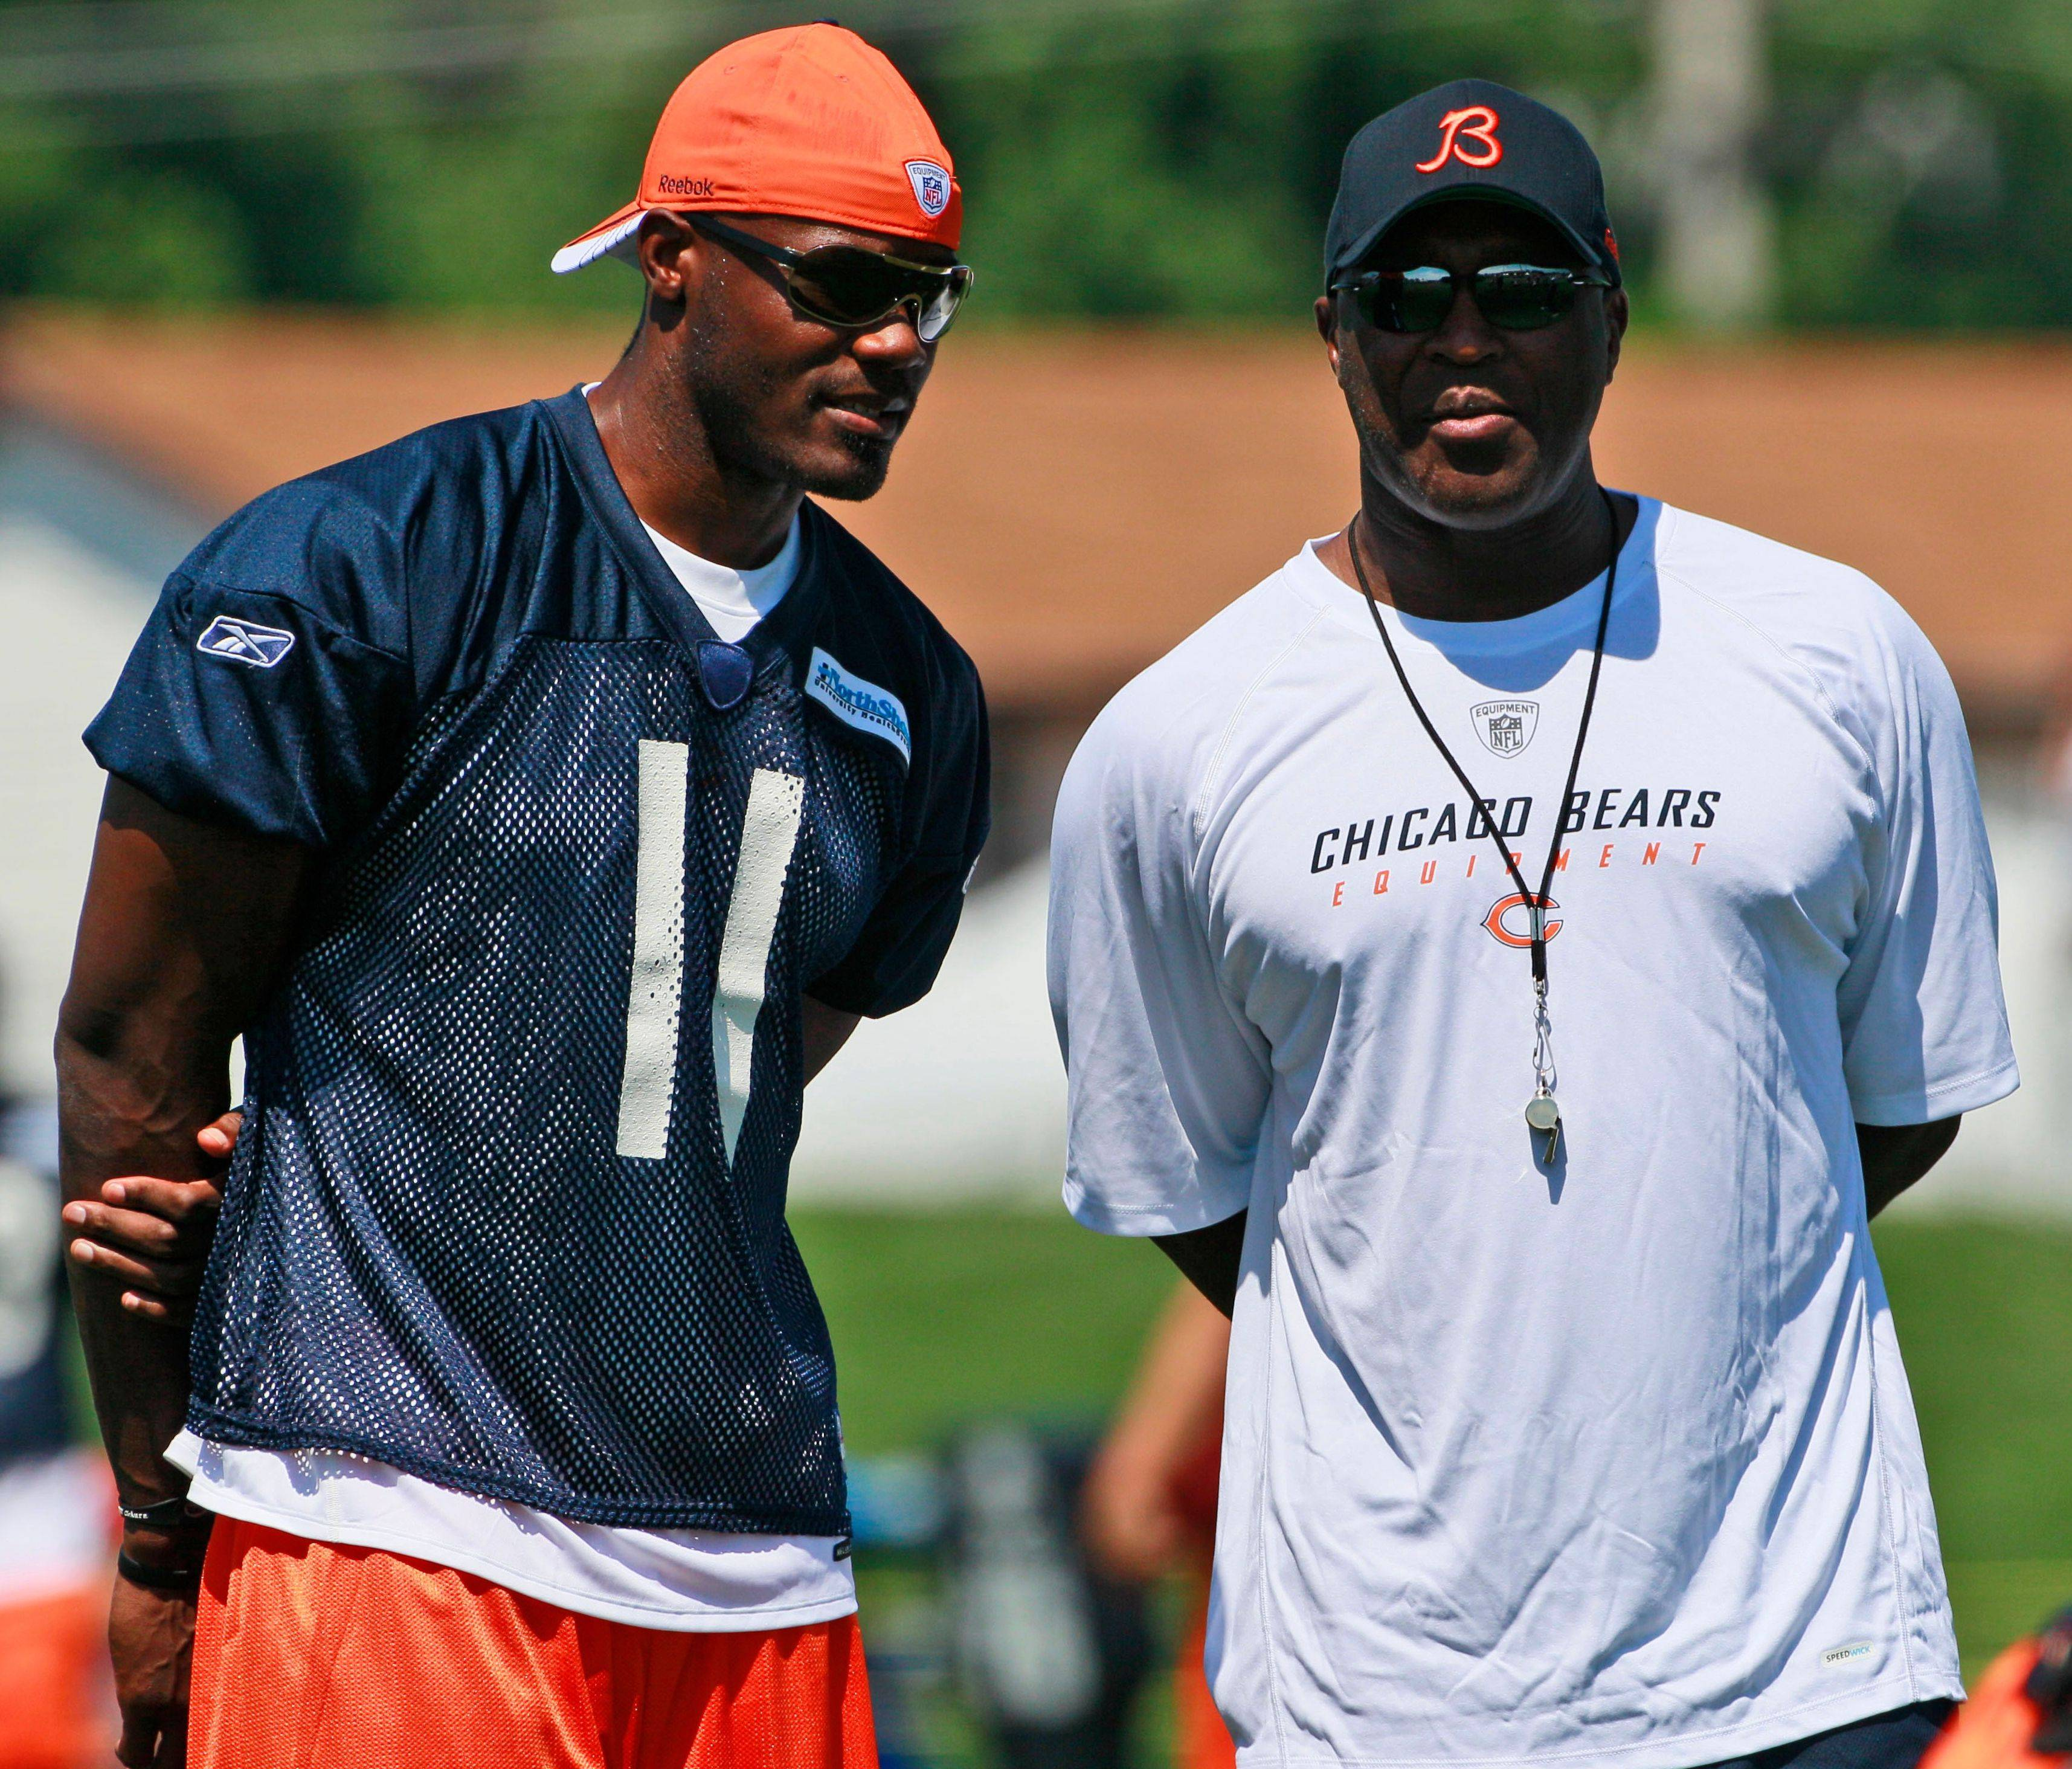 Bears coach Lovie Smith, right, says he isn't concerned with wide receiver Roy Williams' lack of production through the first two preseason games.